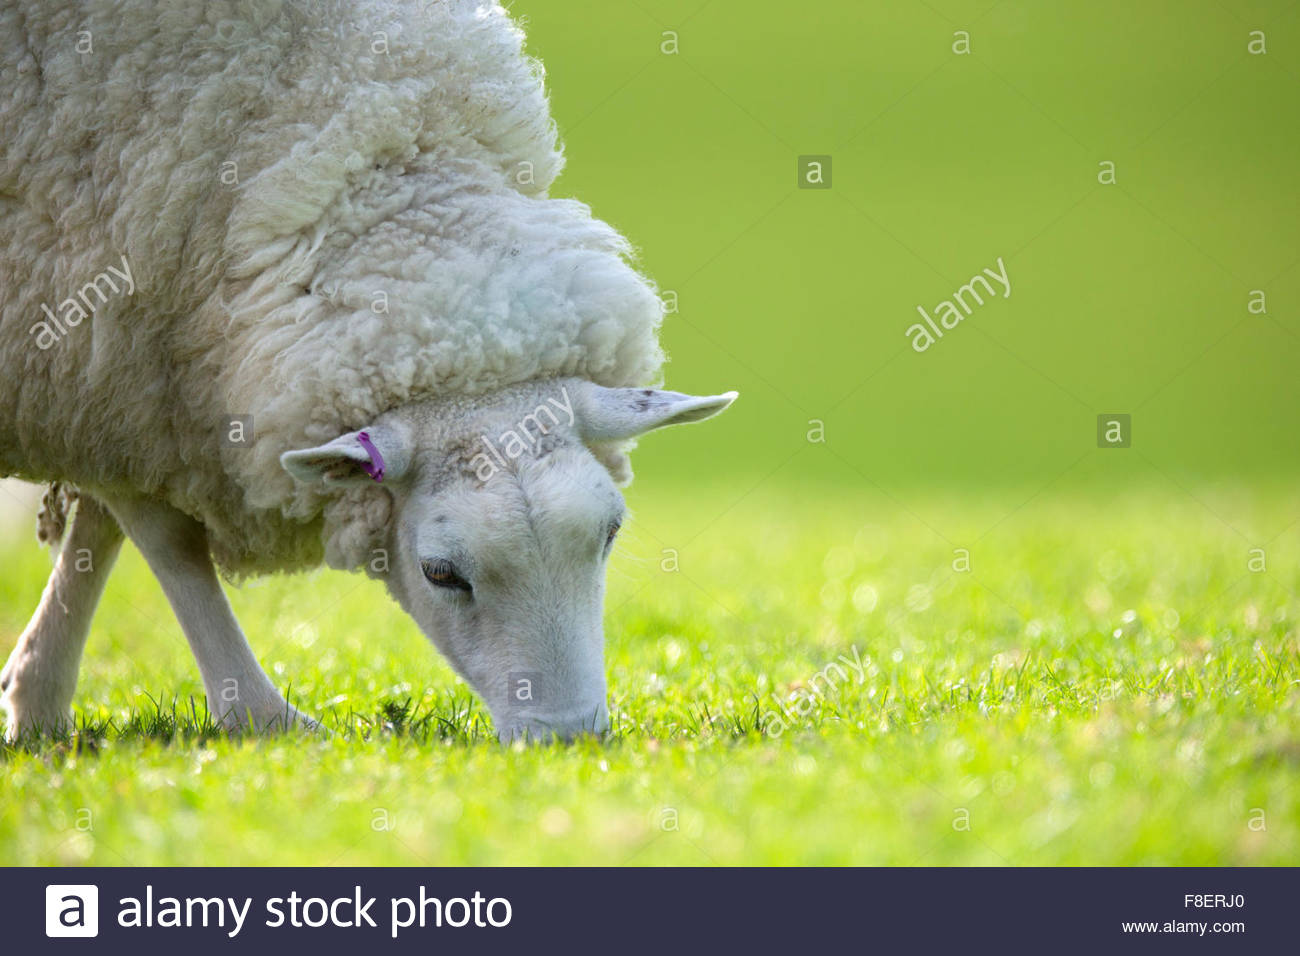 Sheep grazing in green spring grass - Stock Image